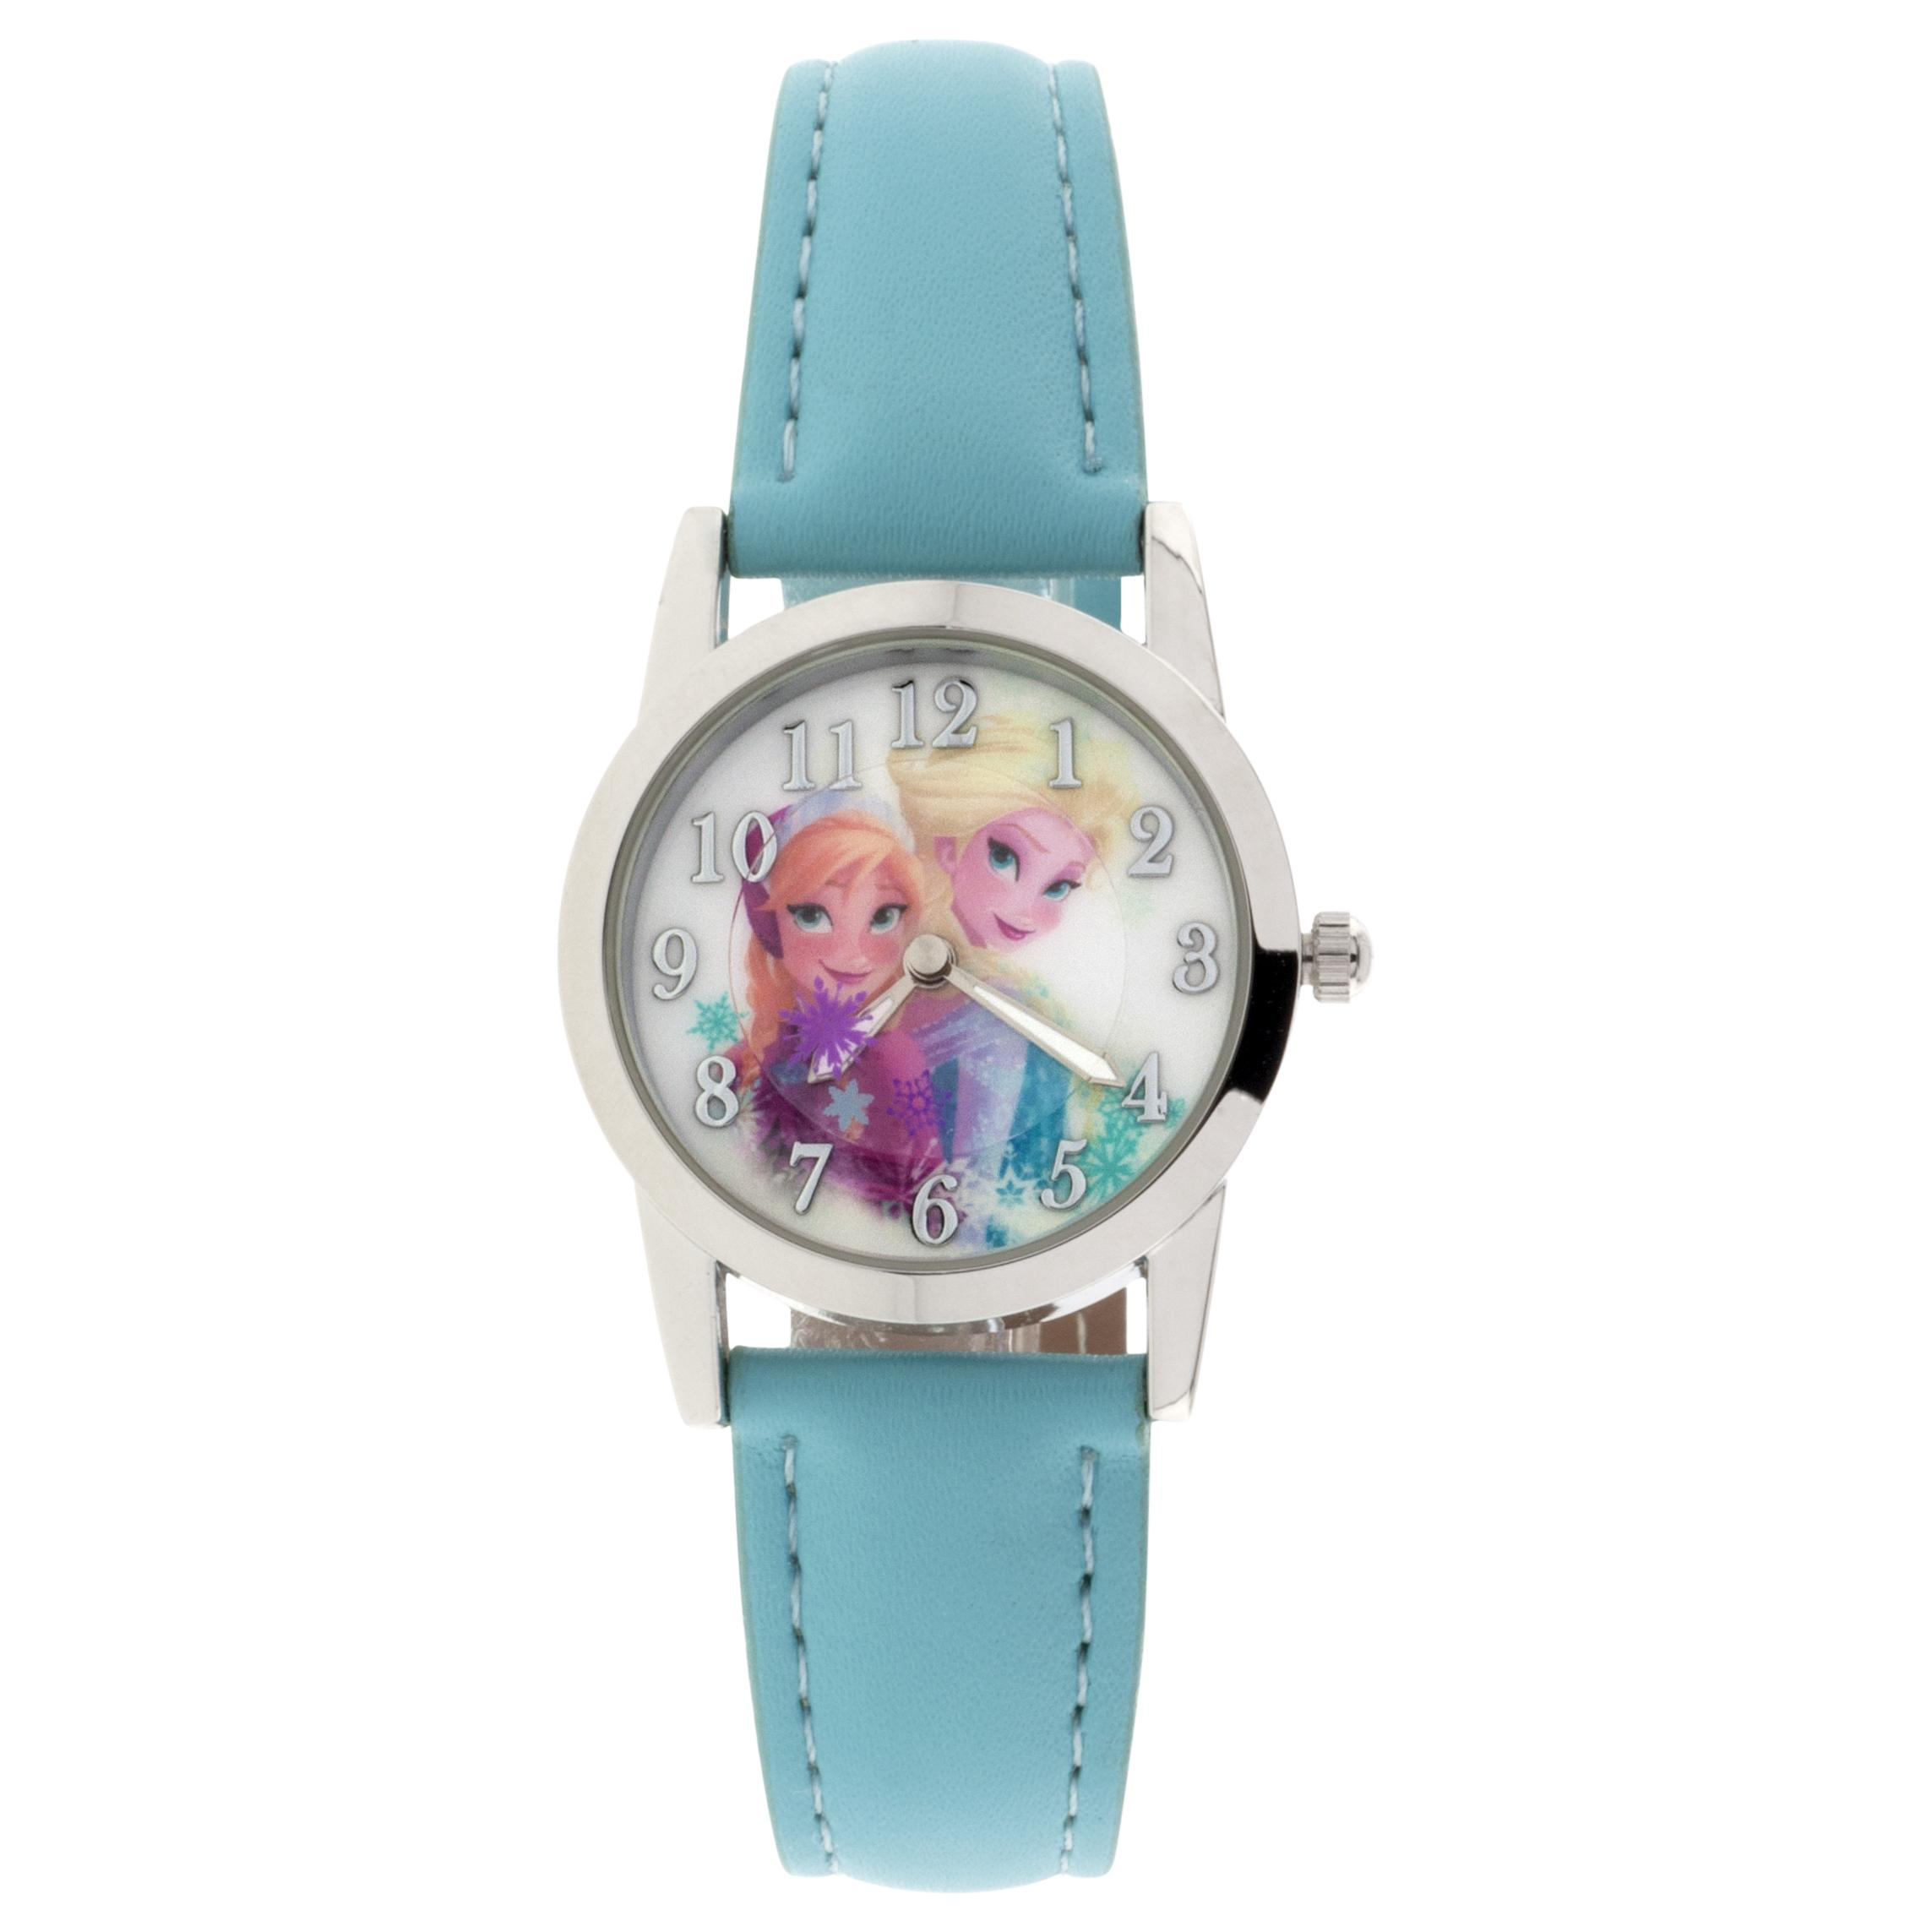 Disney Anna and Elsa Blue Analog Watch